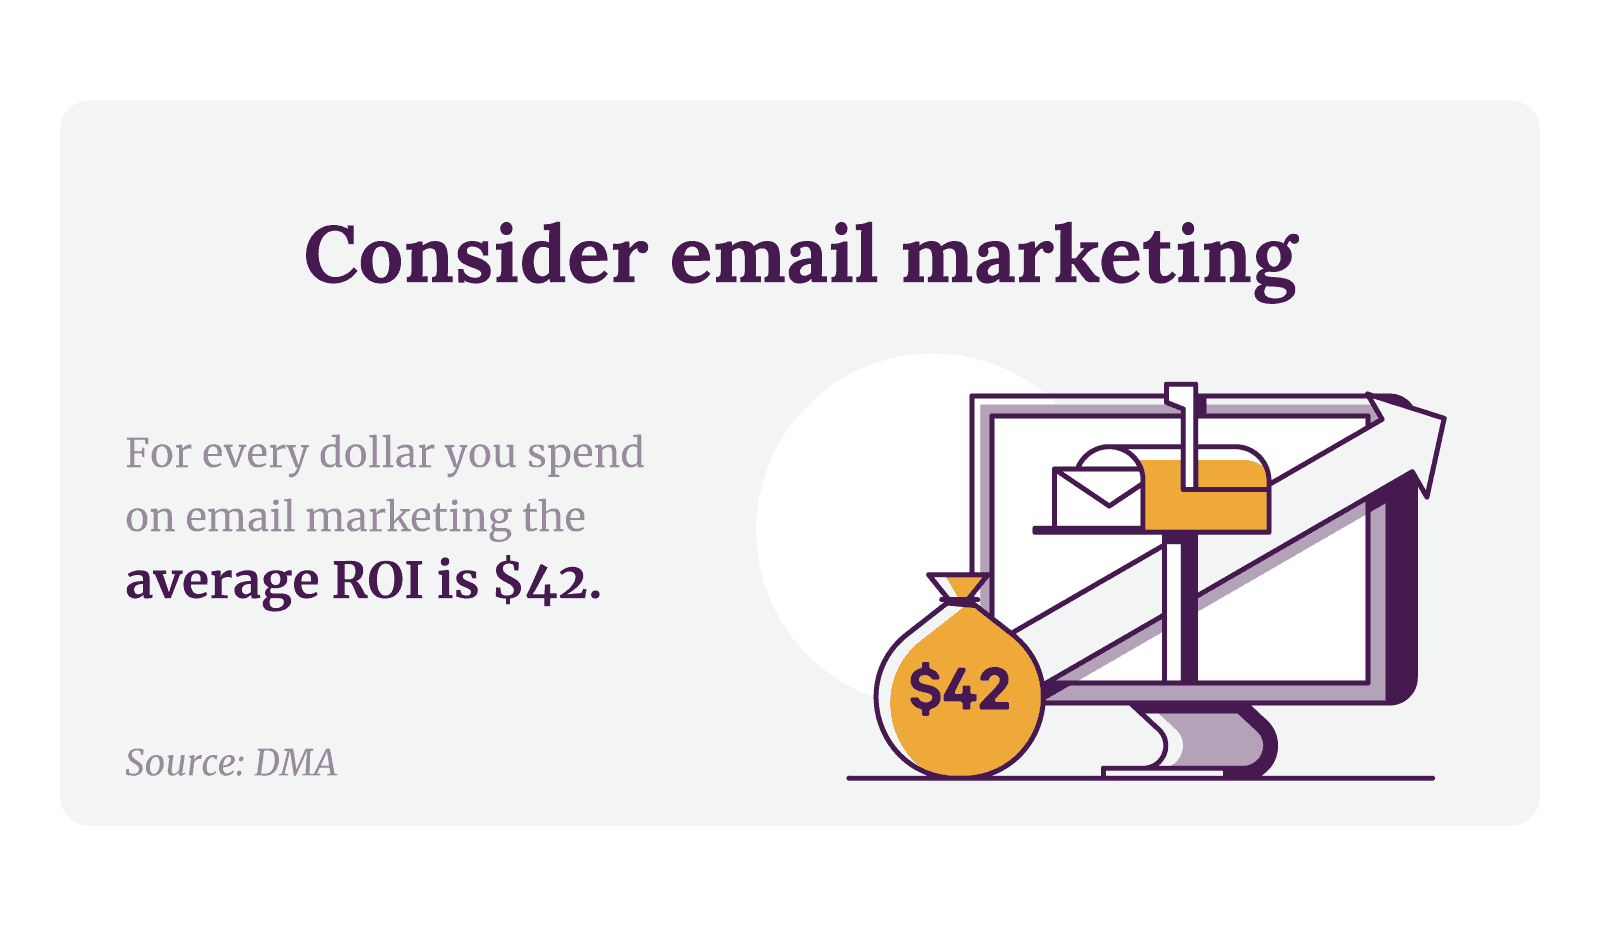 Consider email marketing. For every dollar you spend on email marketing, the average ROI is $42.